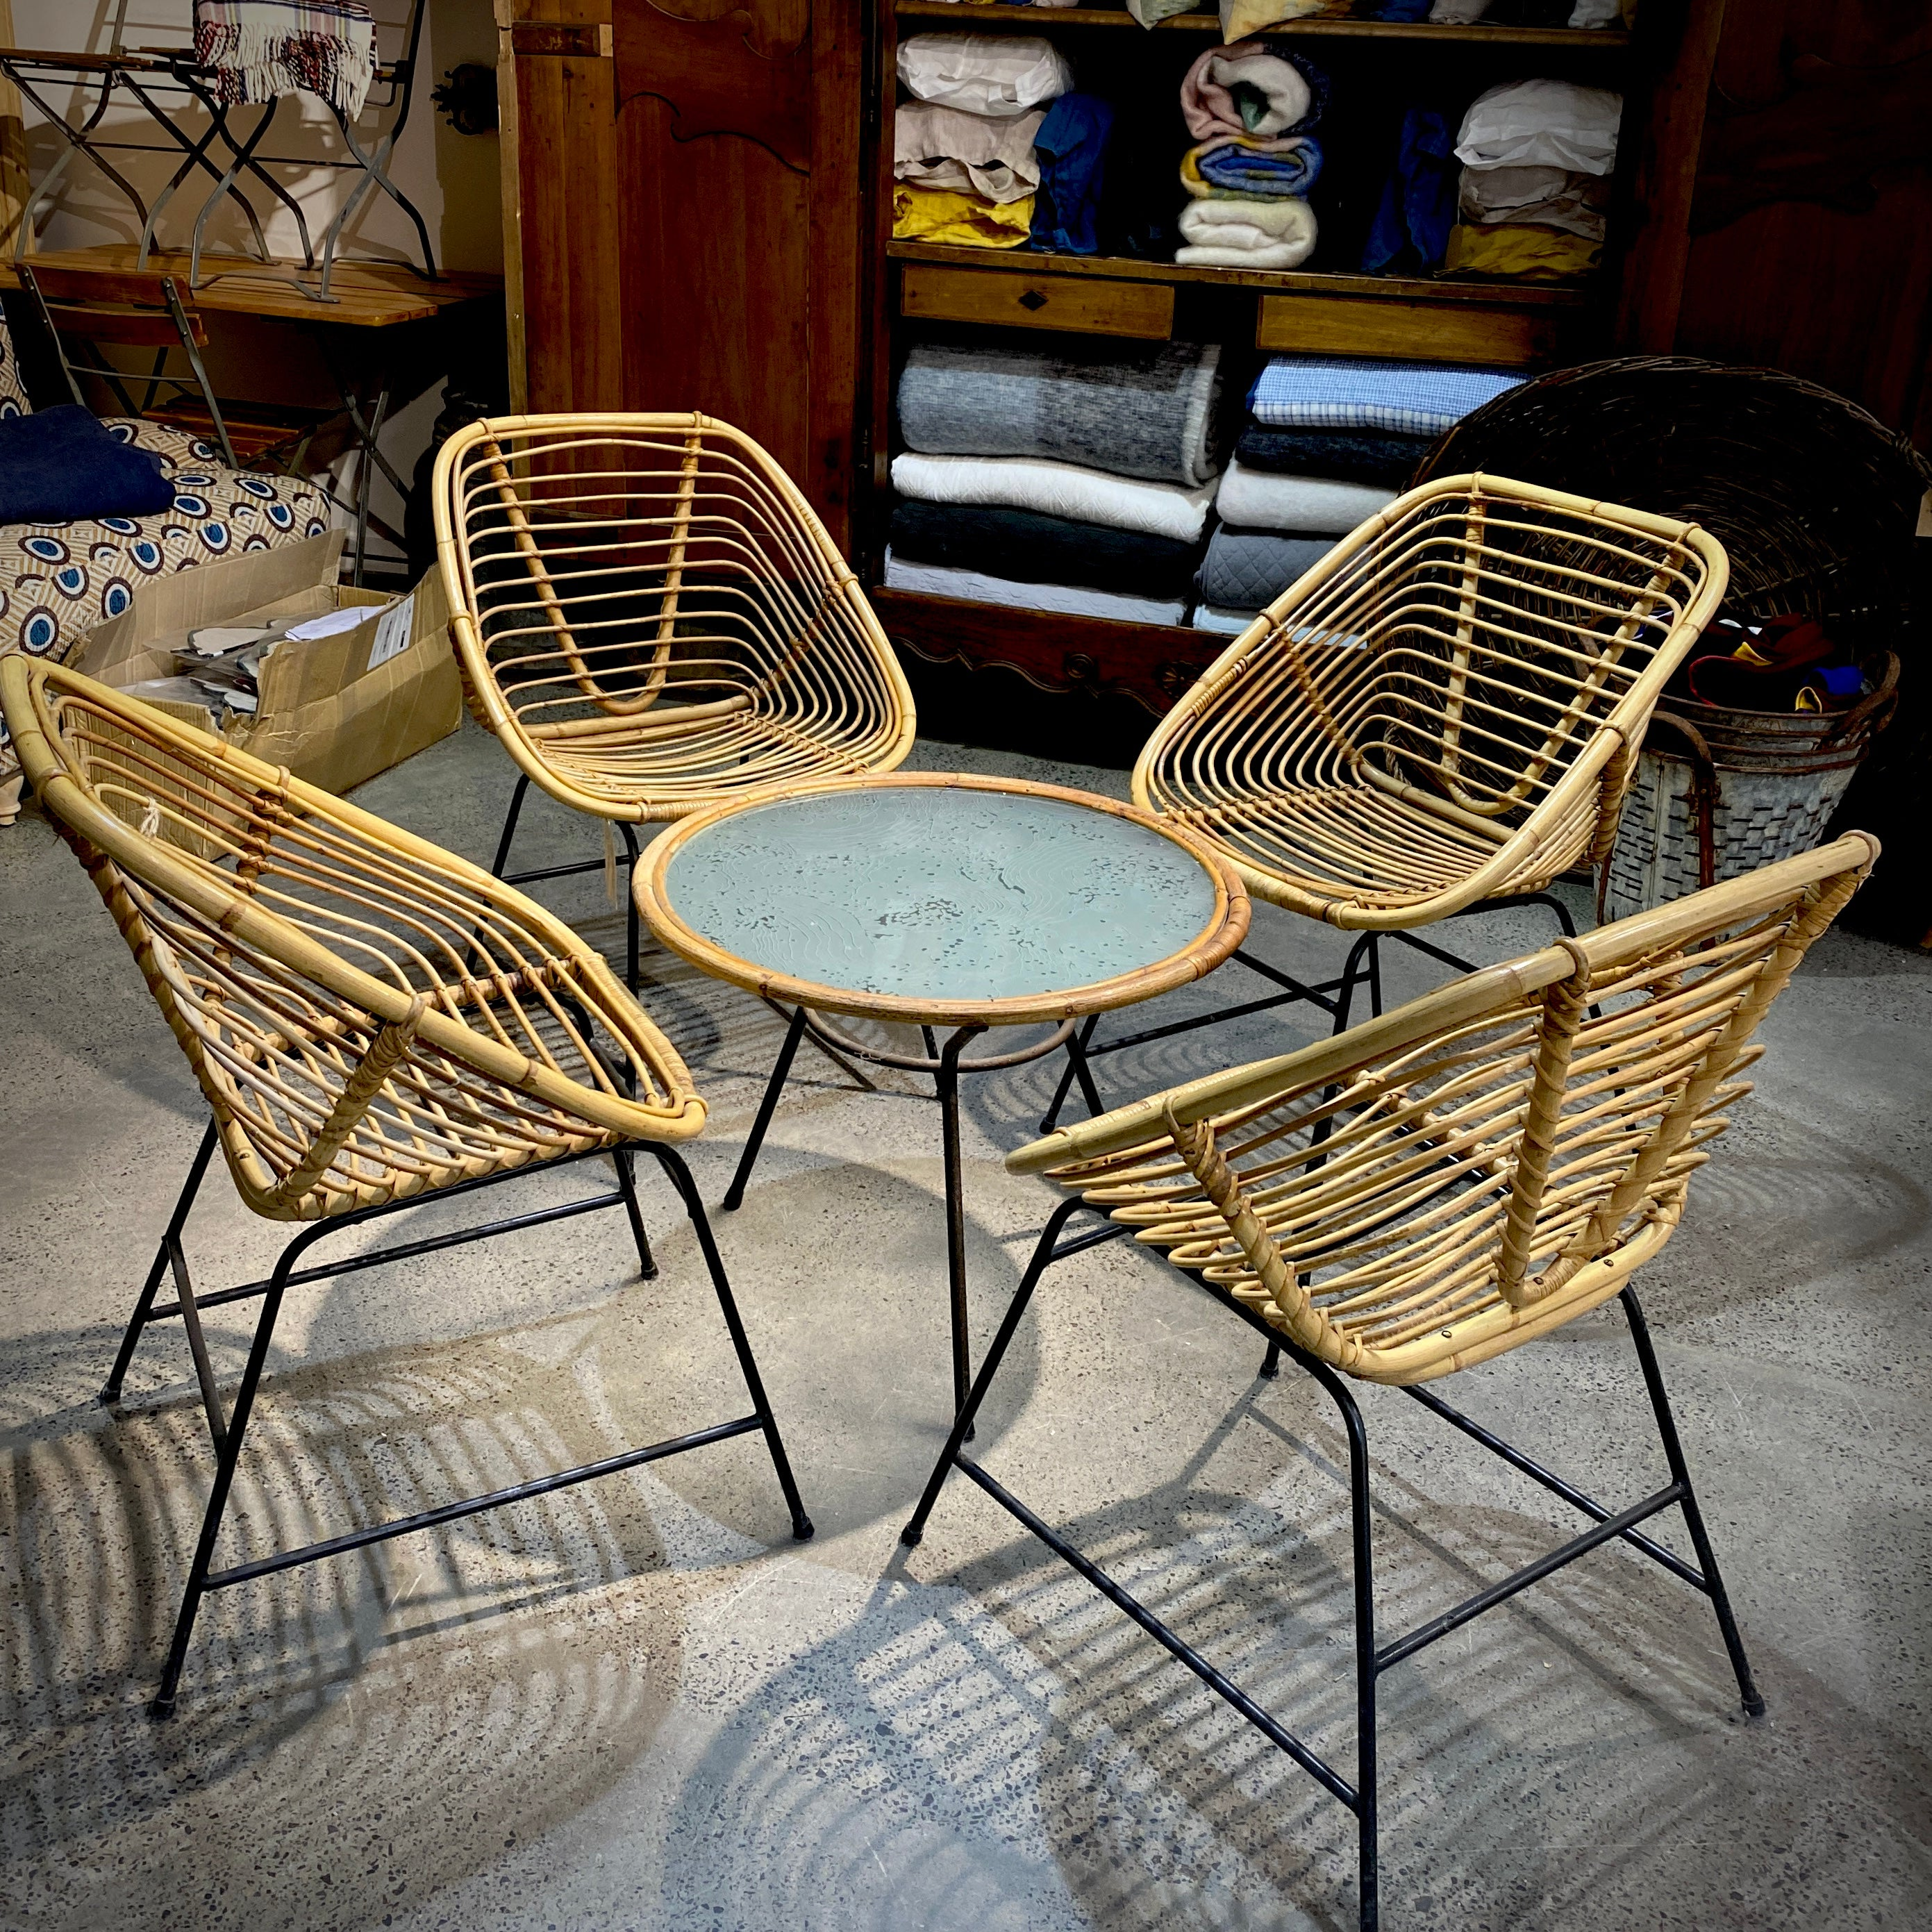 Vintage Cane Bamboo Setting - Four Chairs + Table